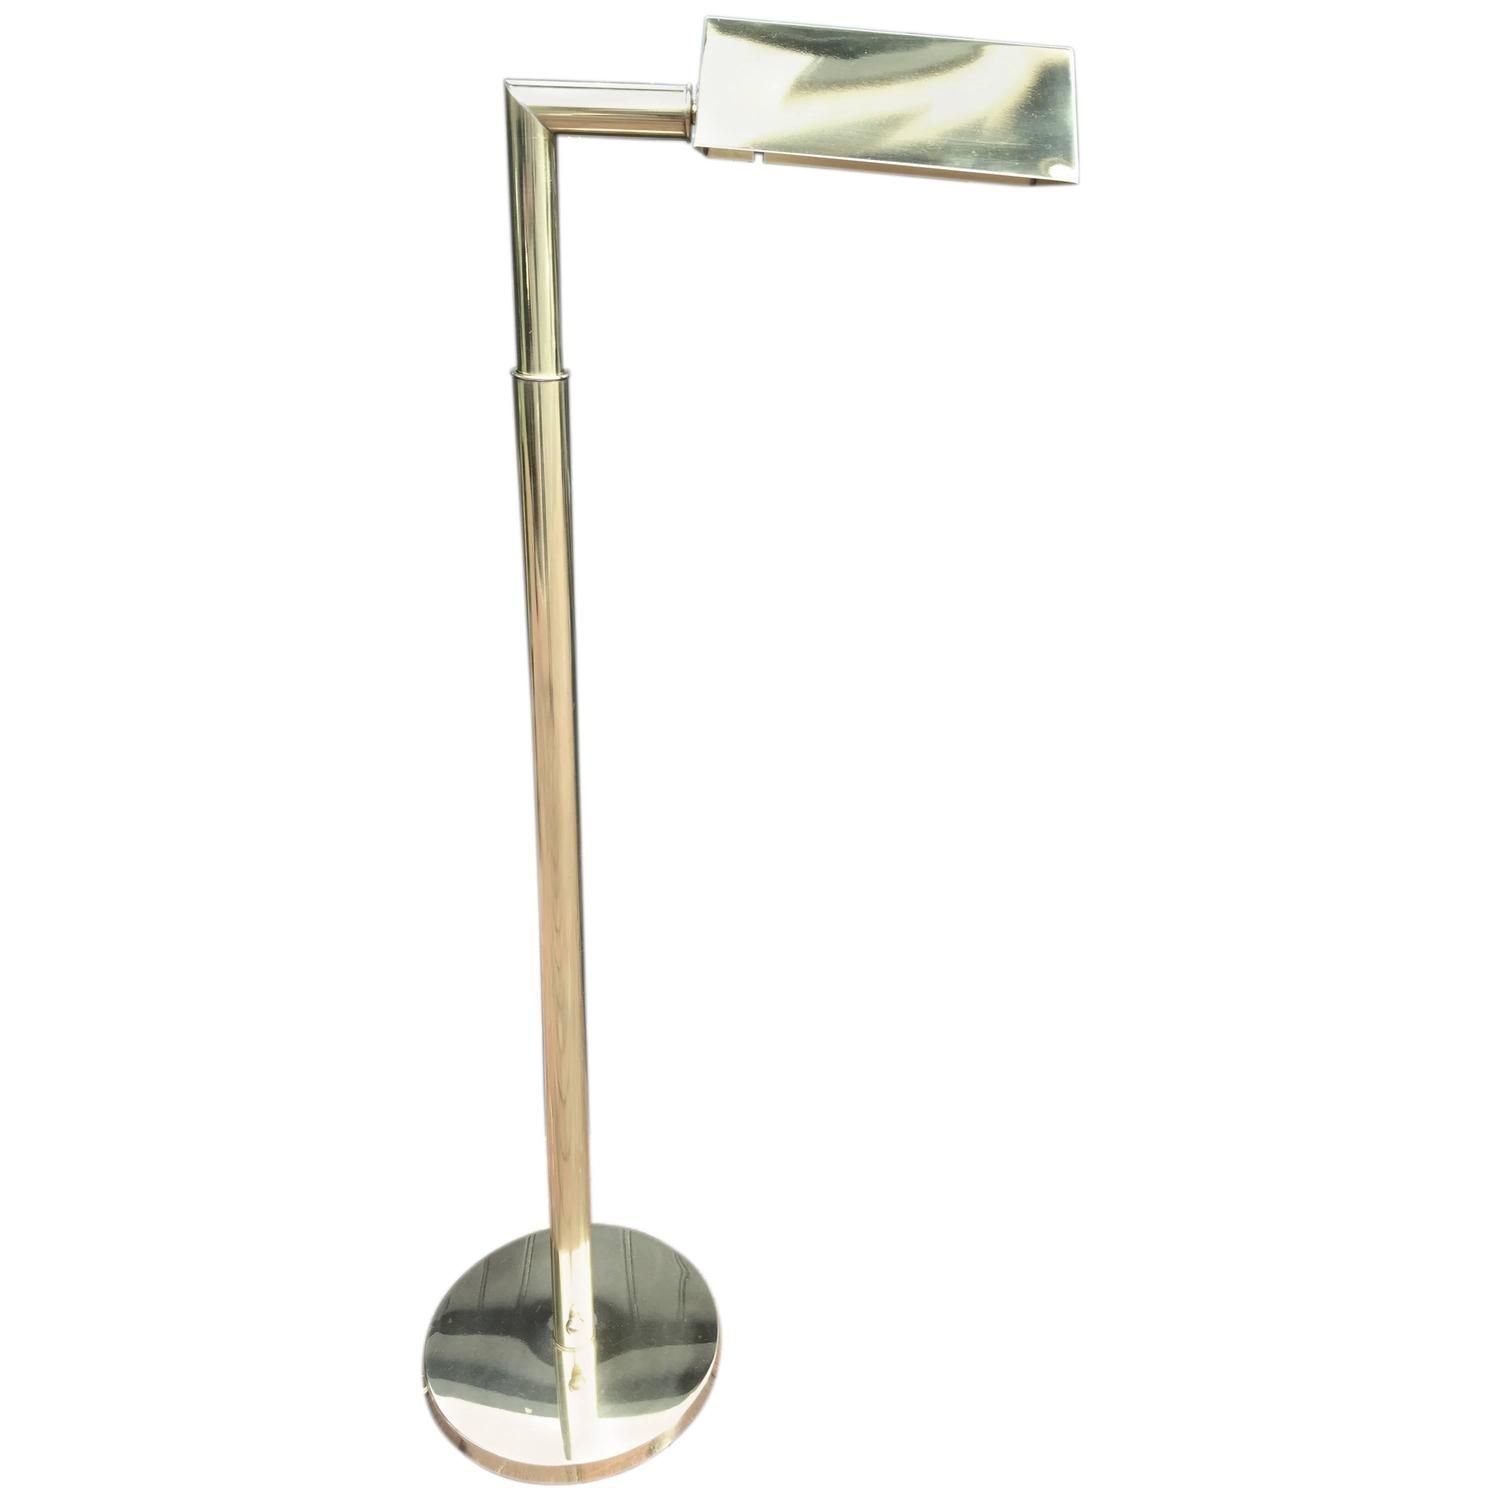 Koch and lowy brass reading lamp for sale at 1stdibs - Floor lamps for reading contemporary ...